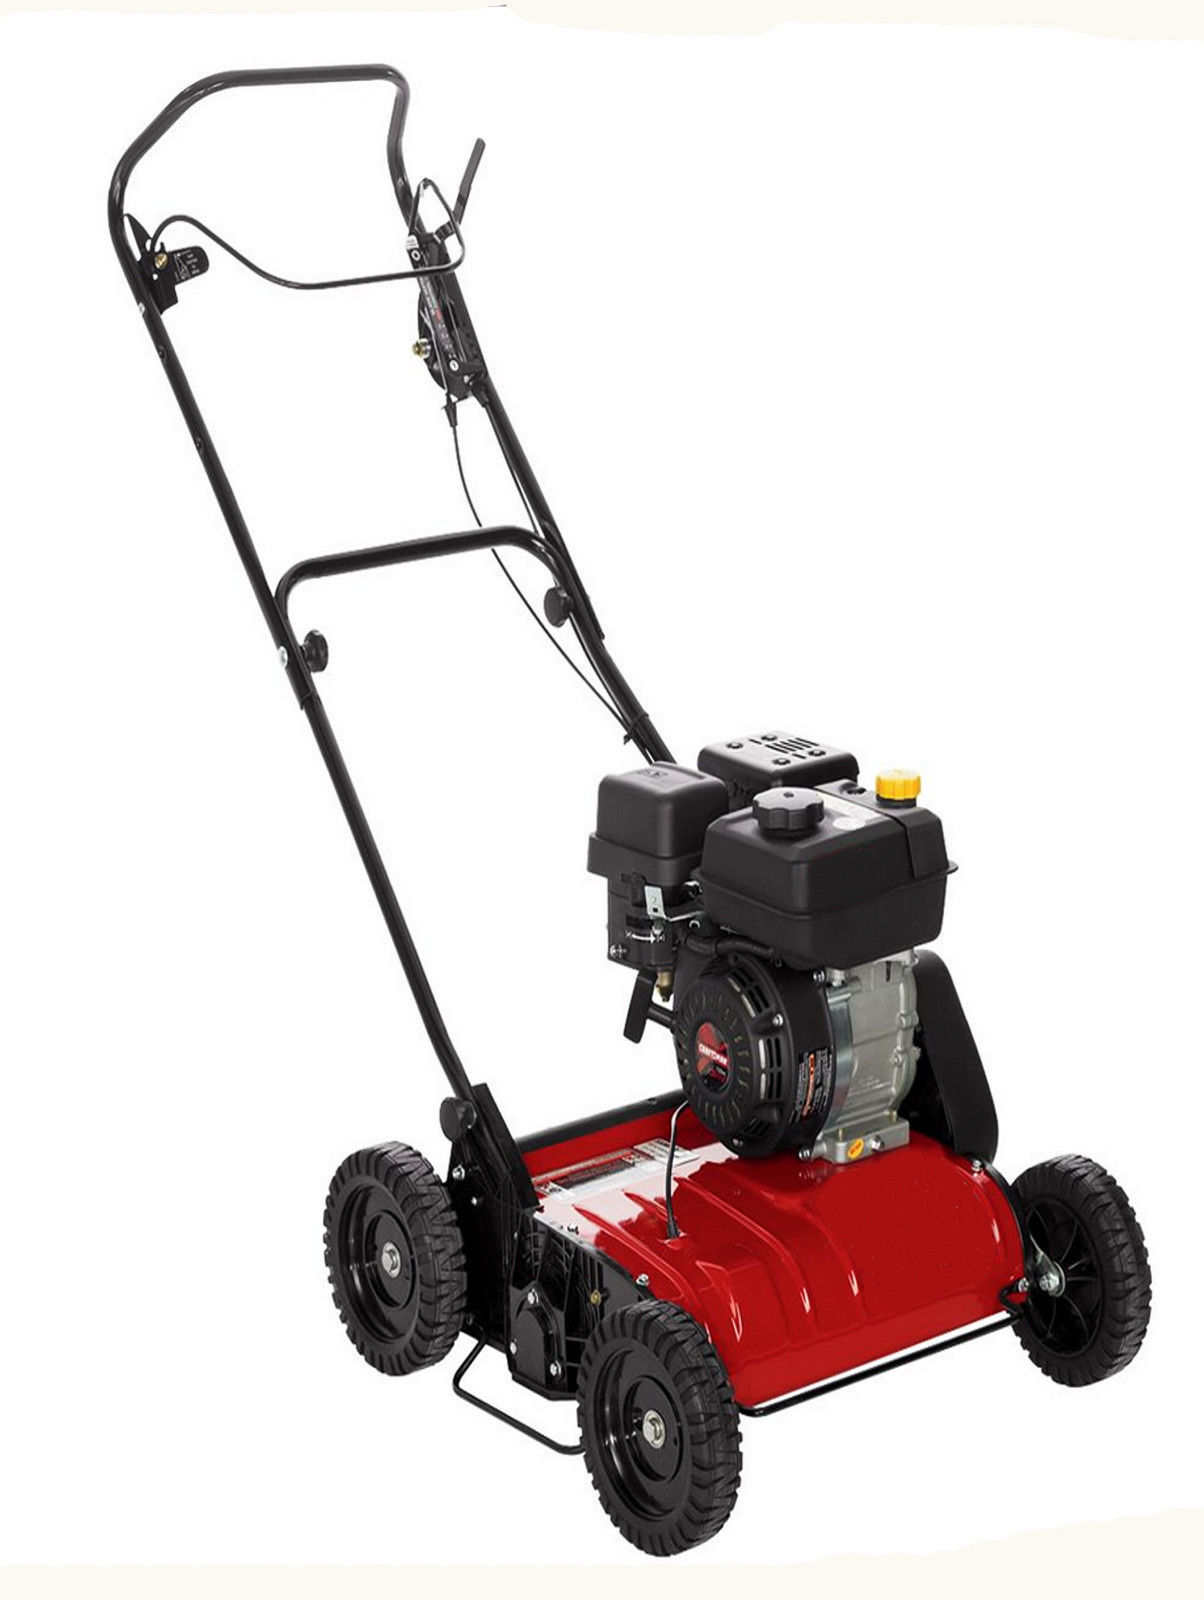 Primary image for MTD MDL.16CG5AMQ 21-Steel Blade Gas Powered Lawn Dethatcher